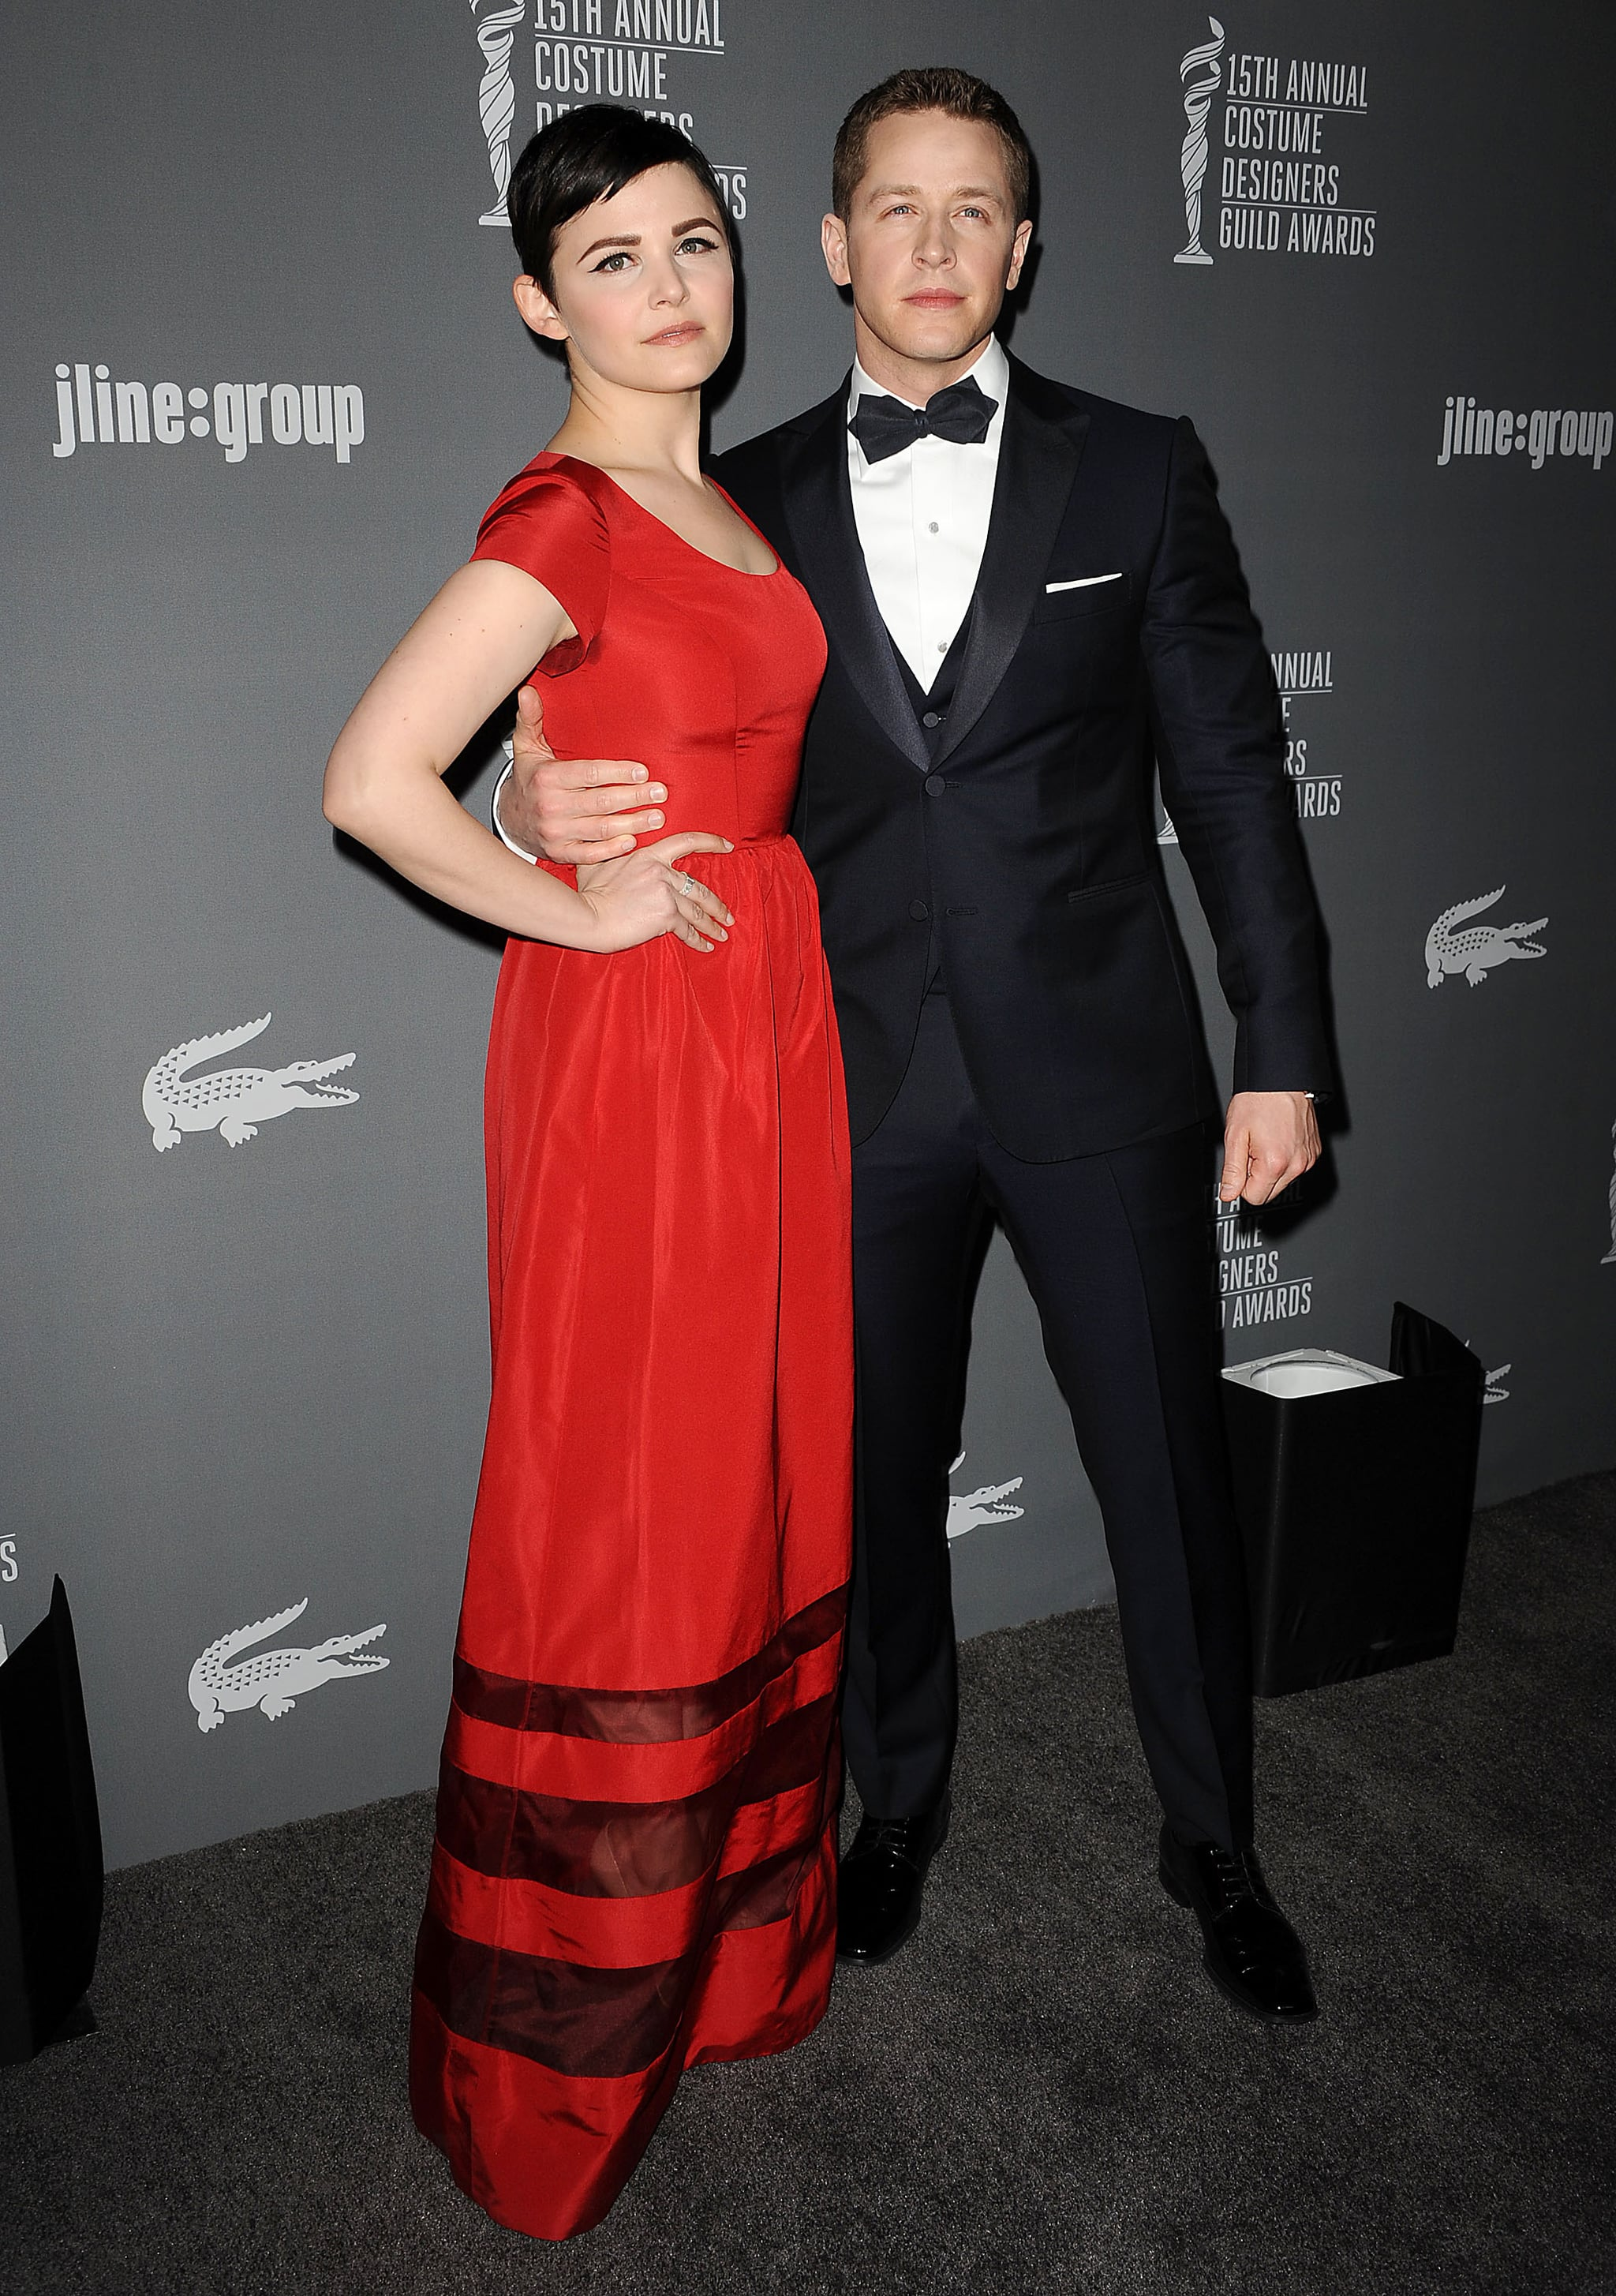 Ginnifer Goodwin and Josh Dallas walked the red carpet.